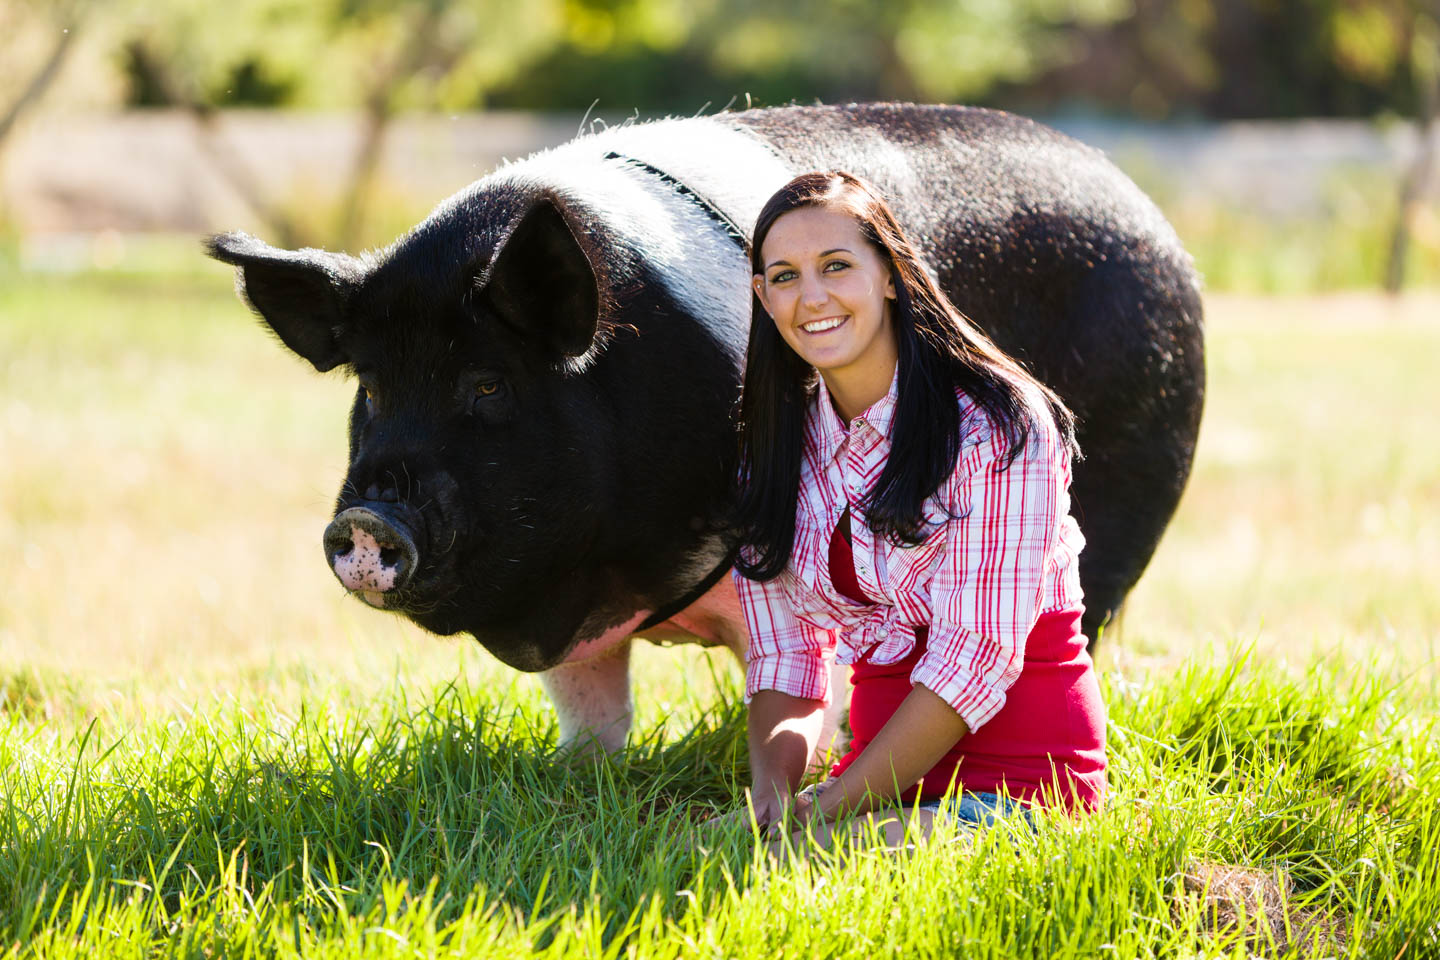 Sally the pig and Jessica in the field